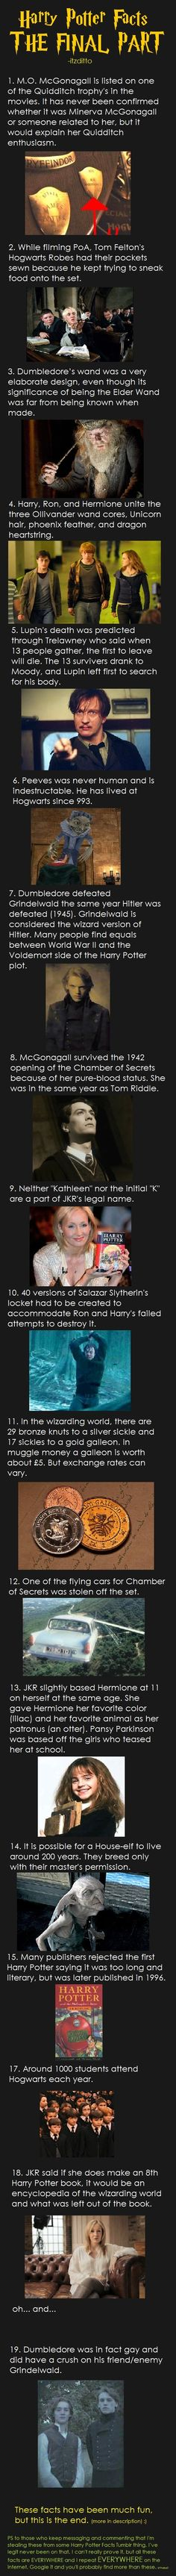 Harry Potter Facts Pt9.